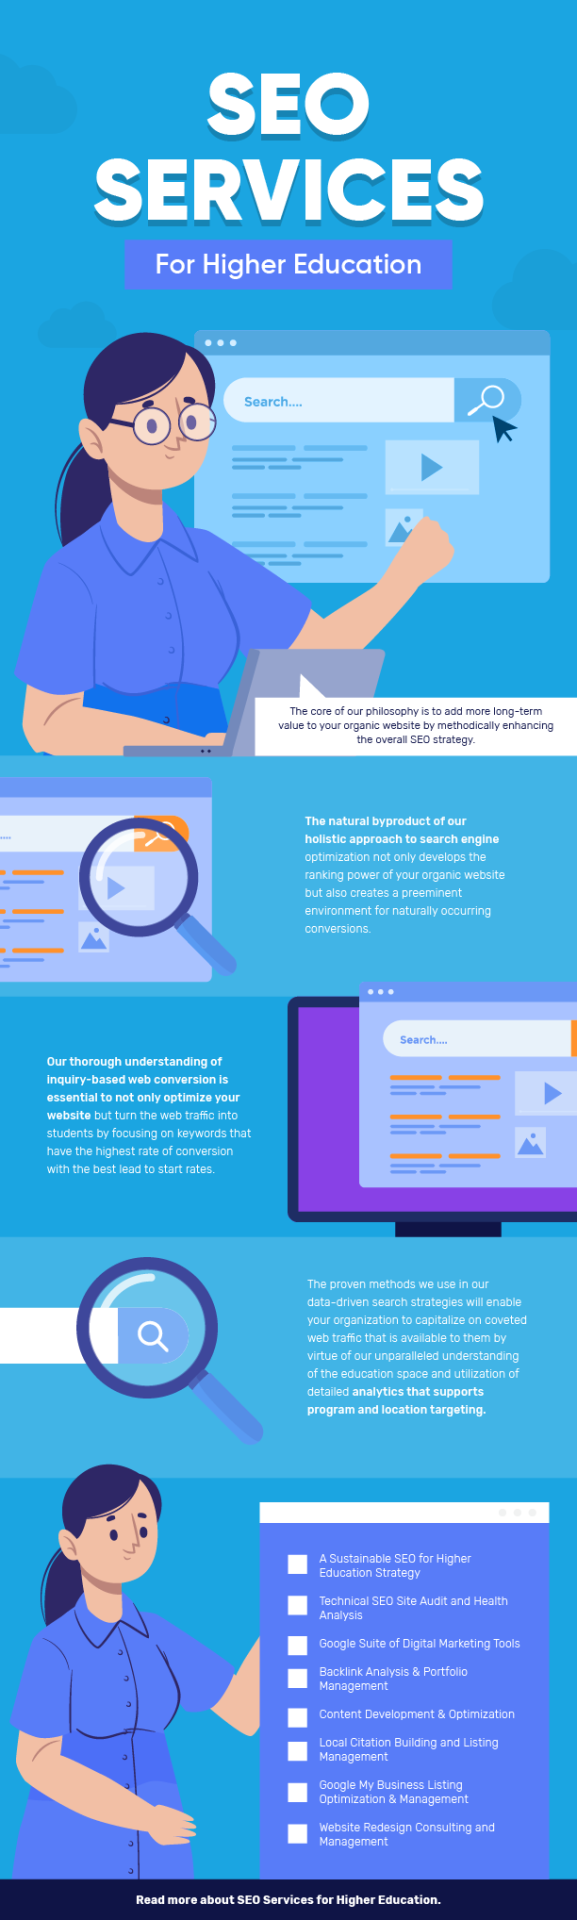 seo-services-higher-education-infographic-plaza